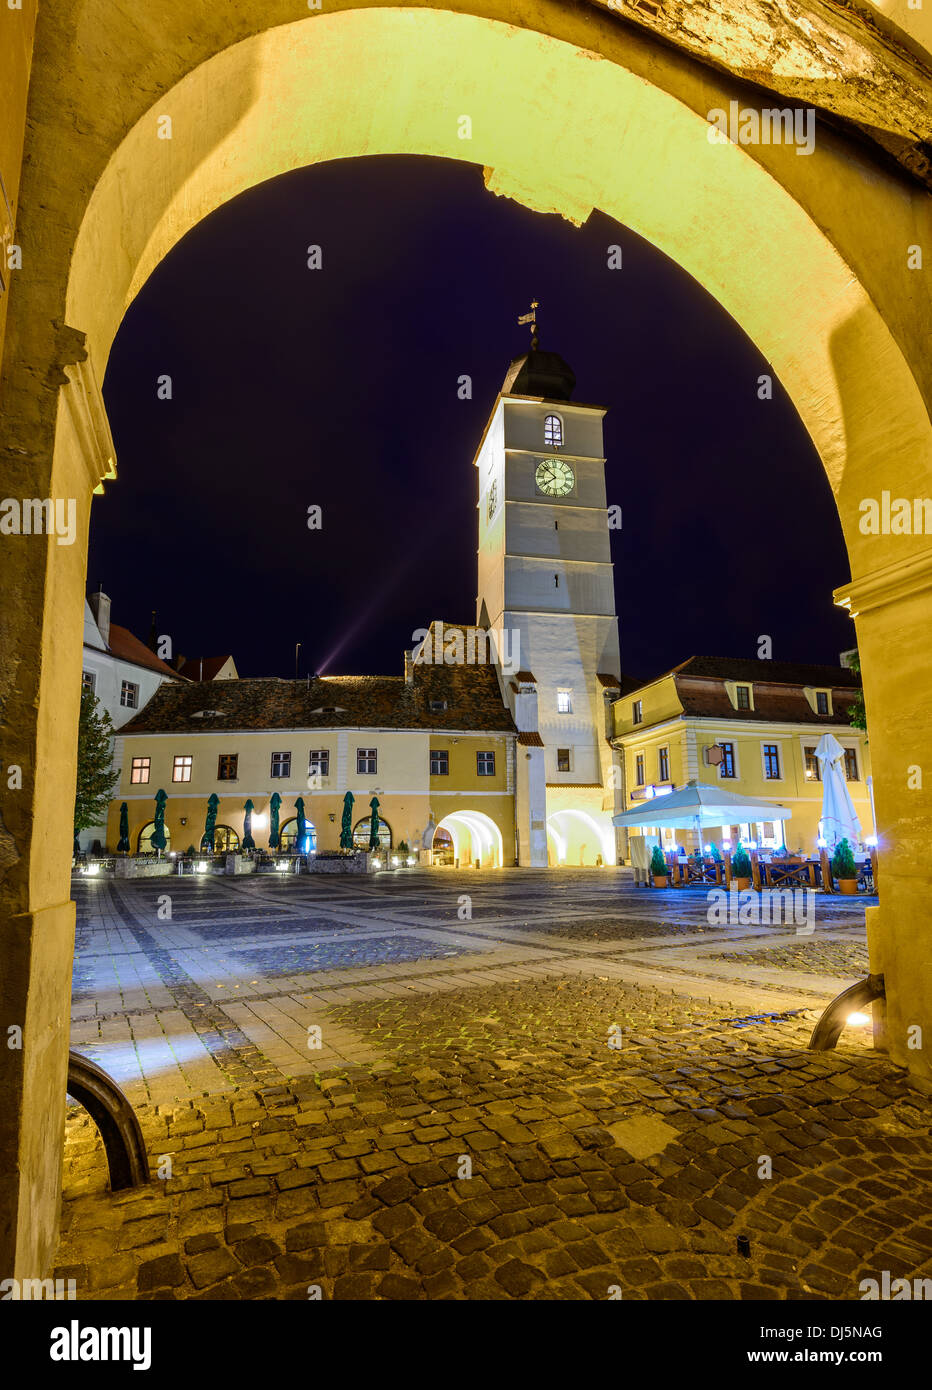 council tower in sibiu (hermannstadt), transylvania, romania, at night - Stock Image